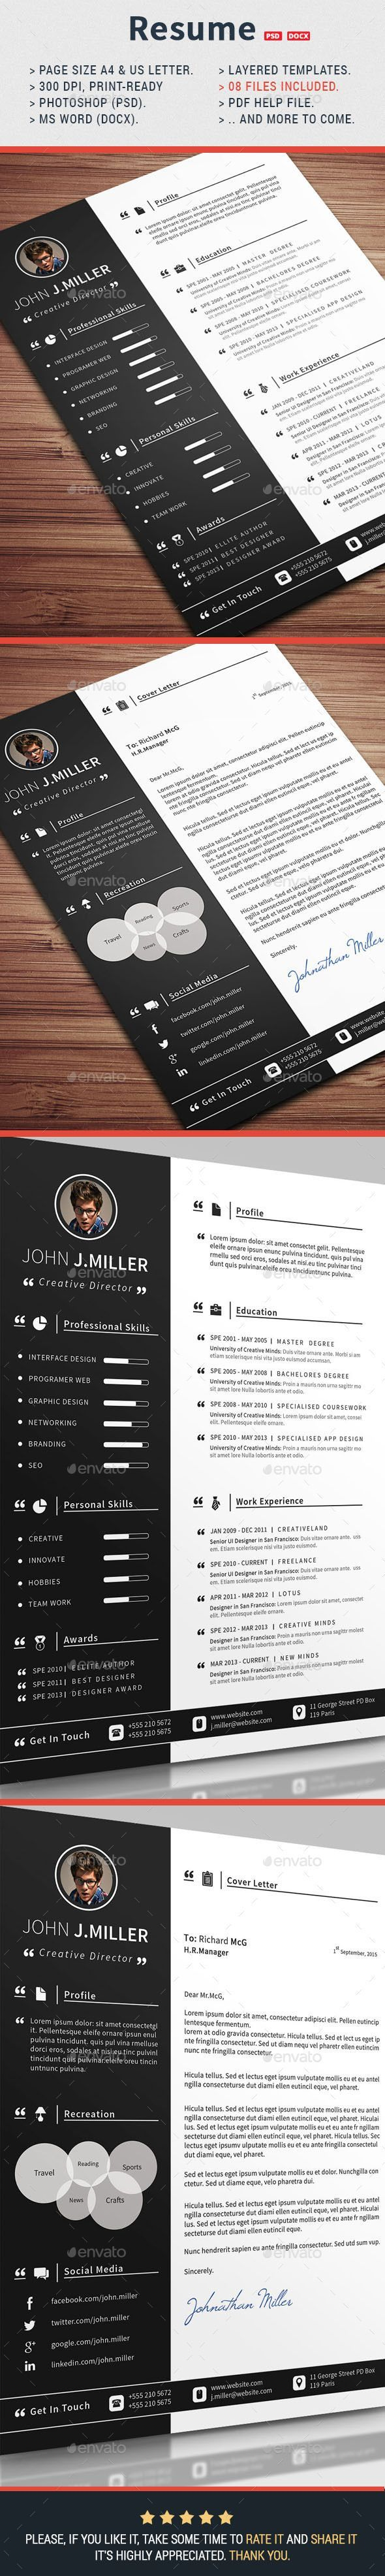 8 Best 履歷 Images On Pinterest Resume Cv Cv Design And Design